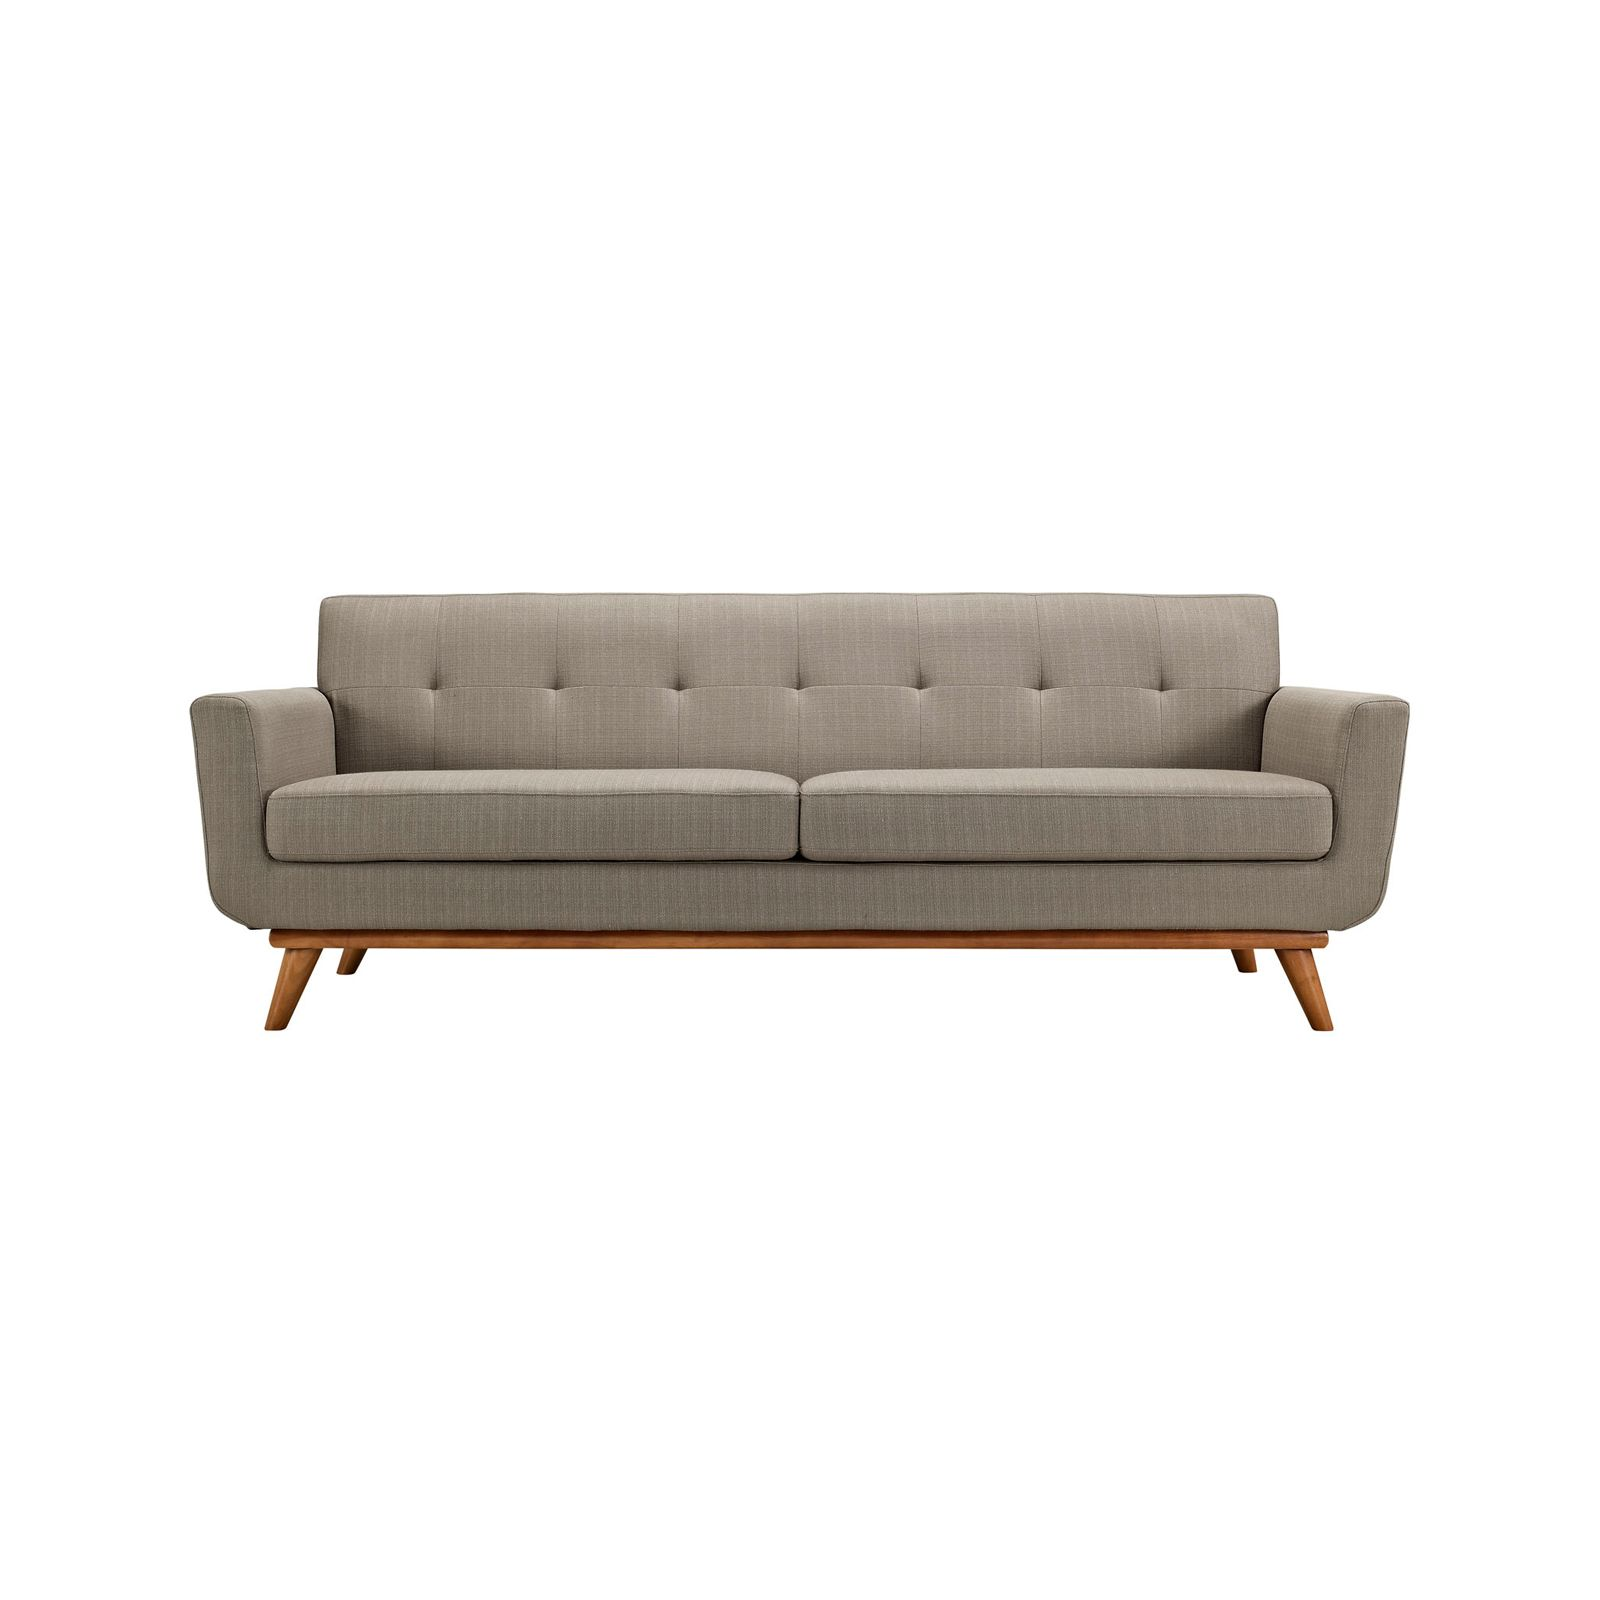 Phoebe Sofa Unique Modern Furniture Dot & Bo